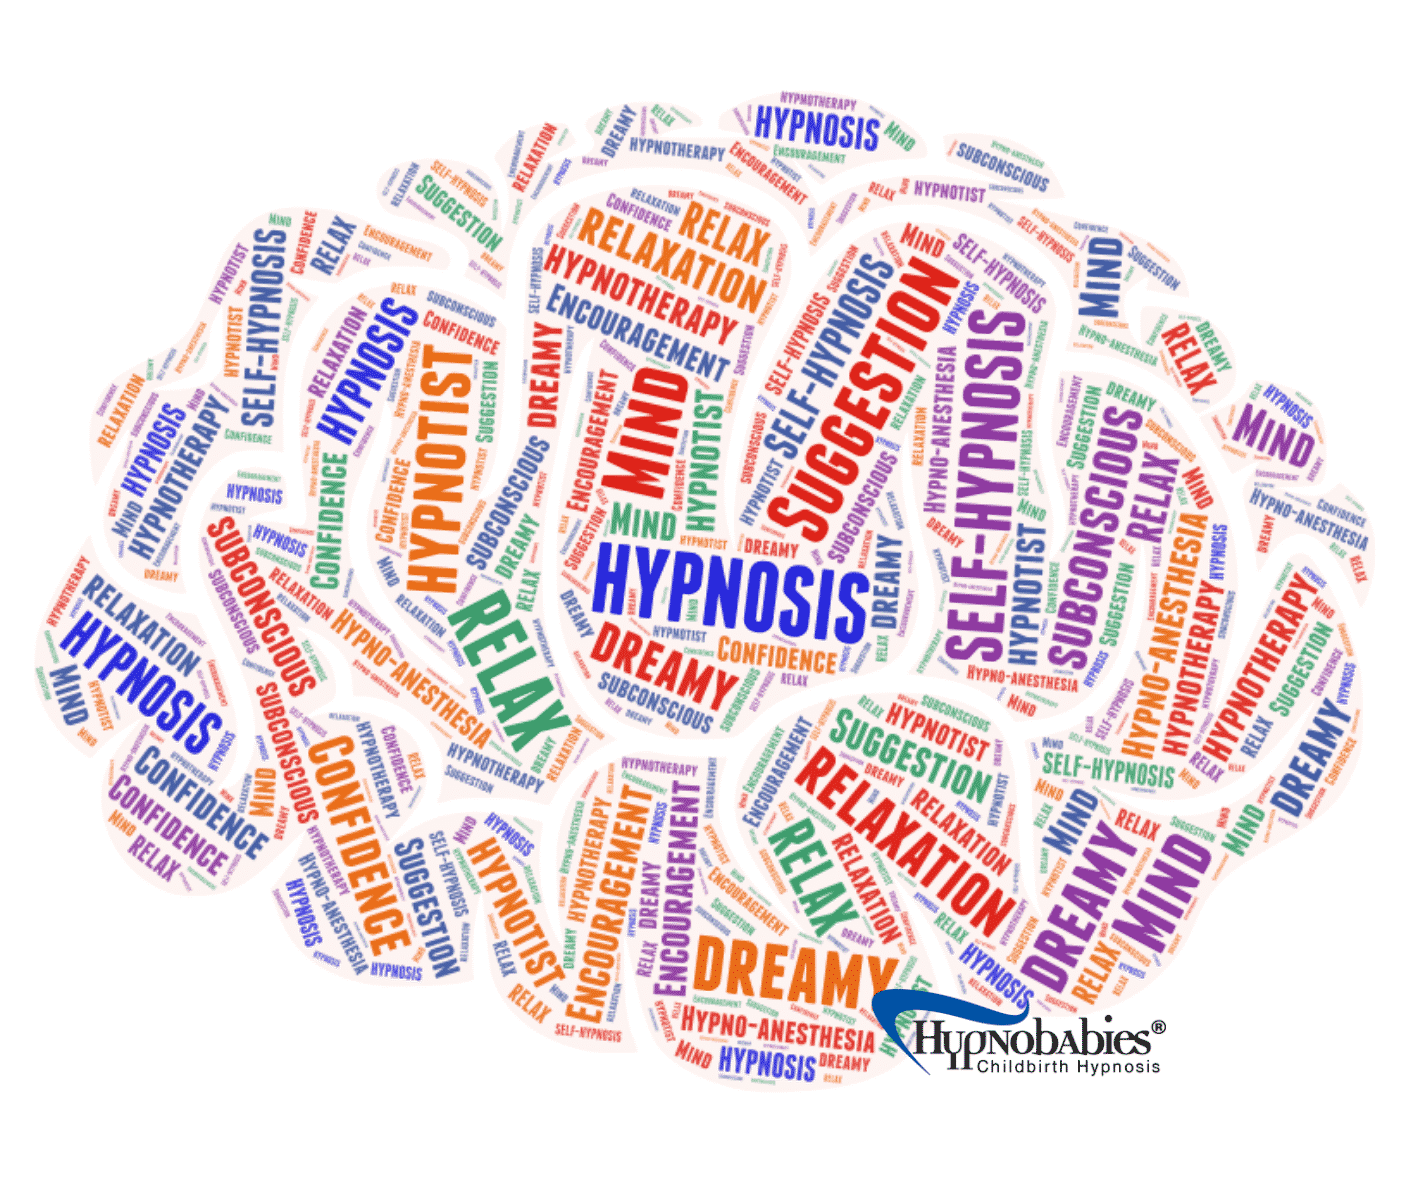 Hypnosis suggestions inside the shape of a brain